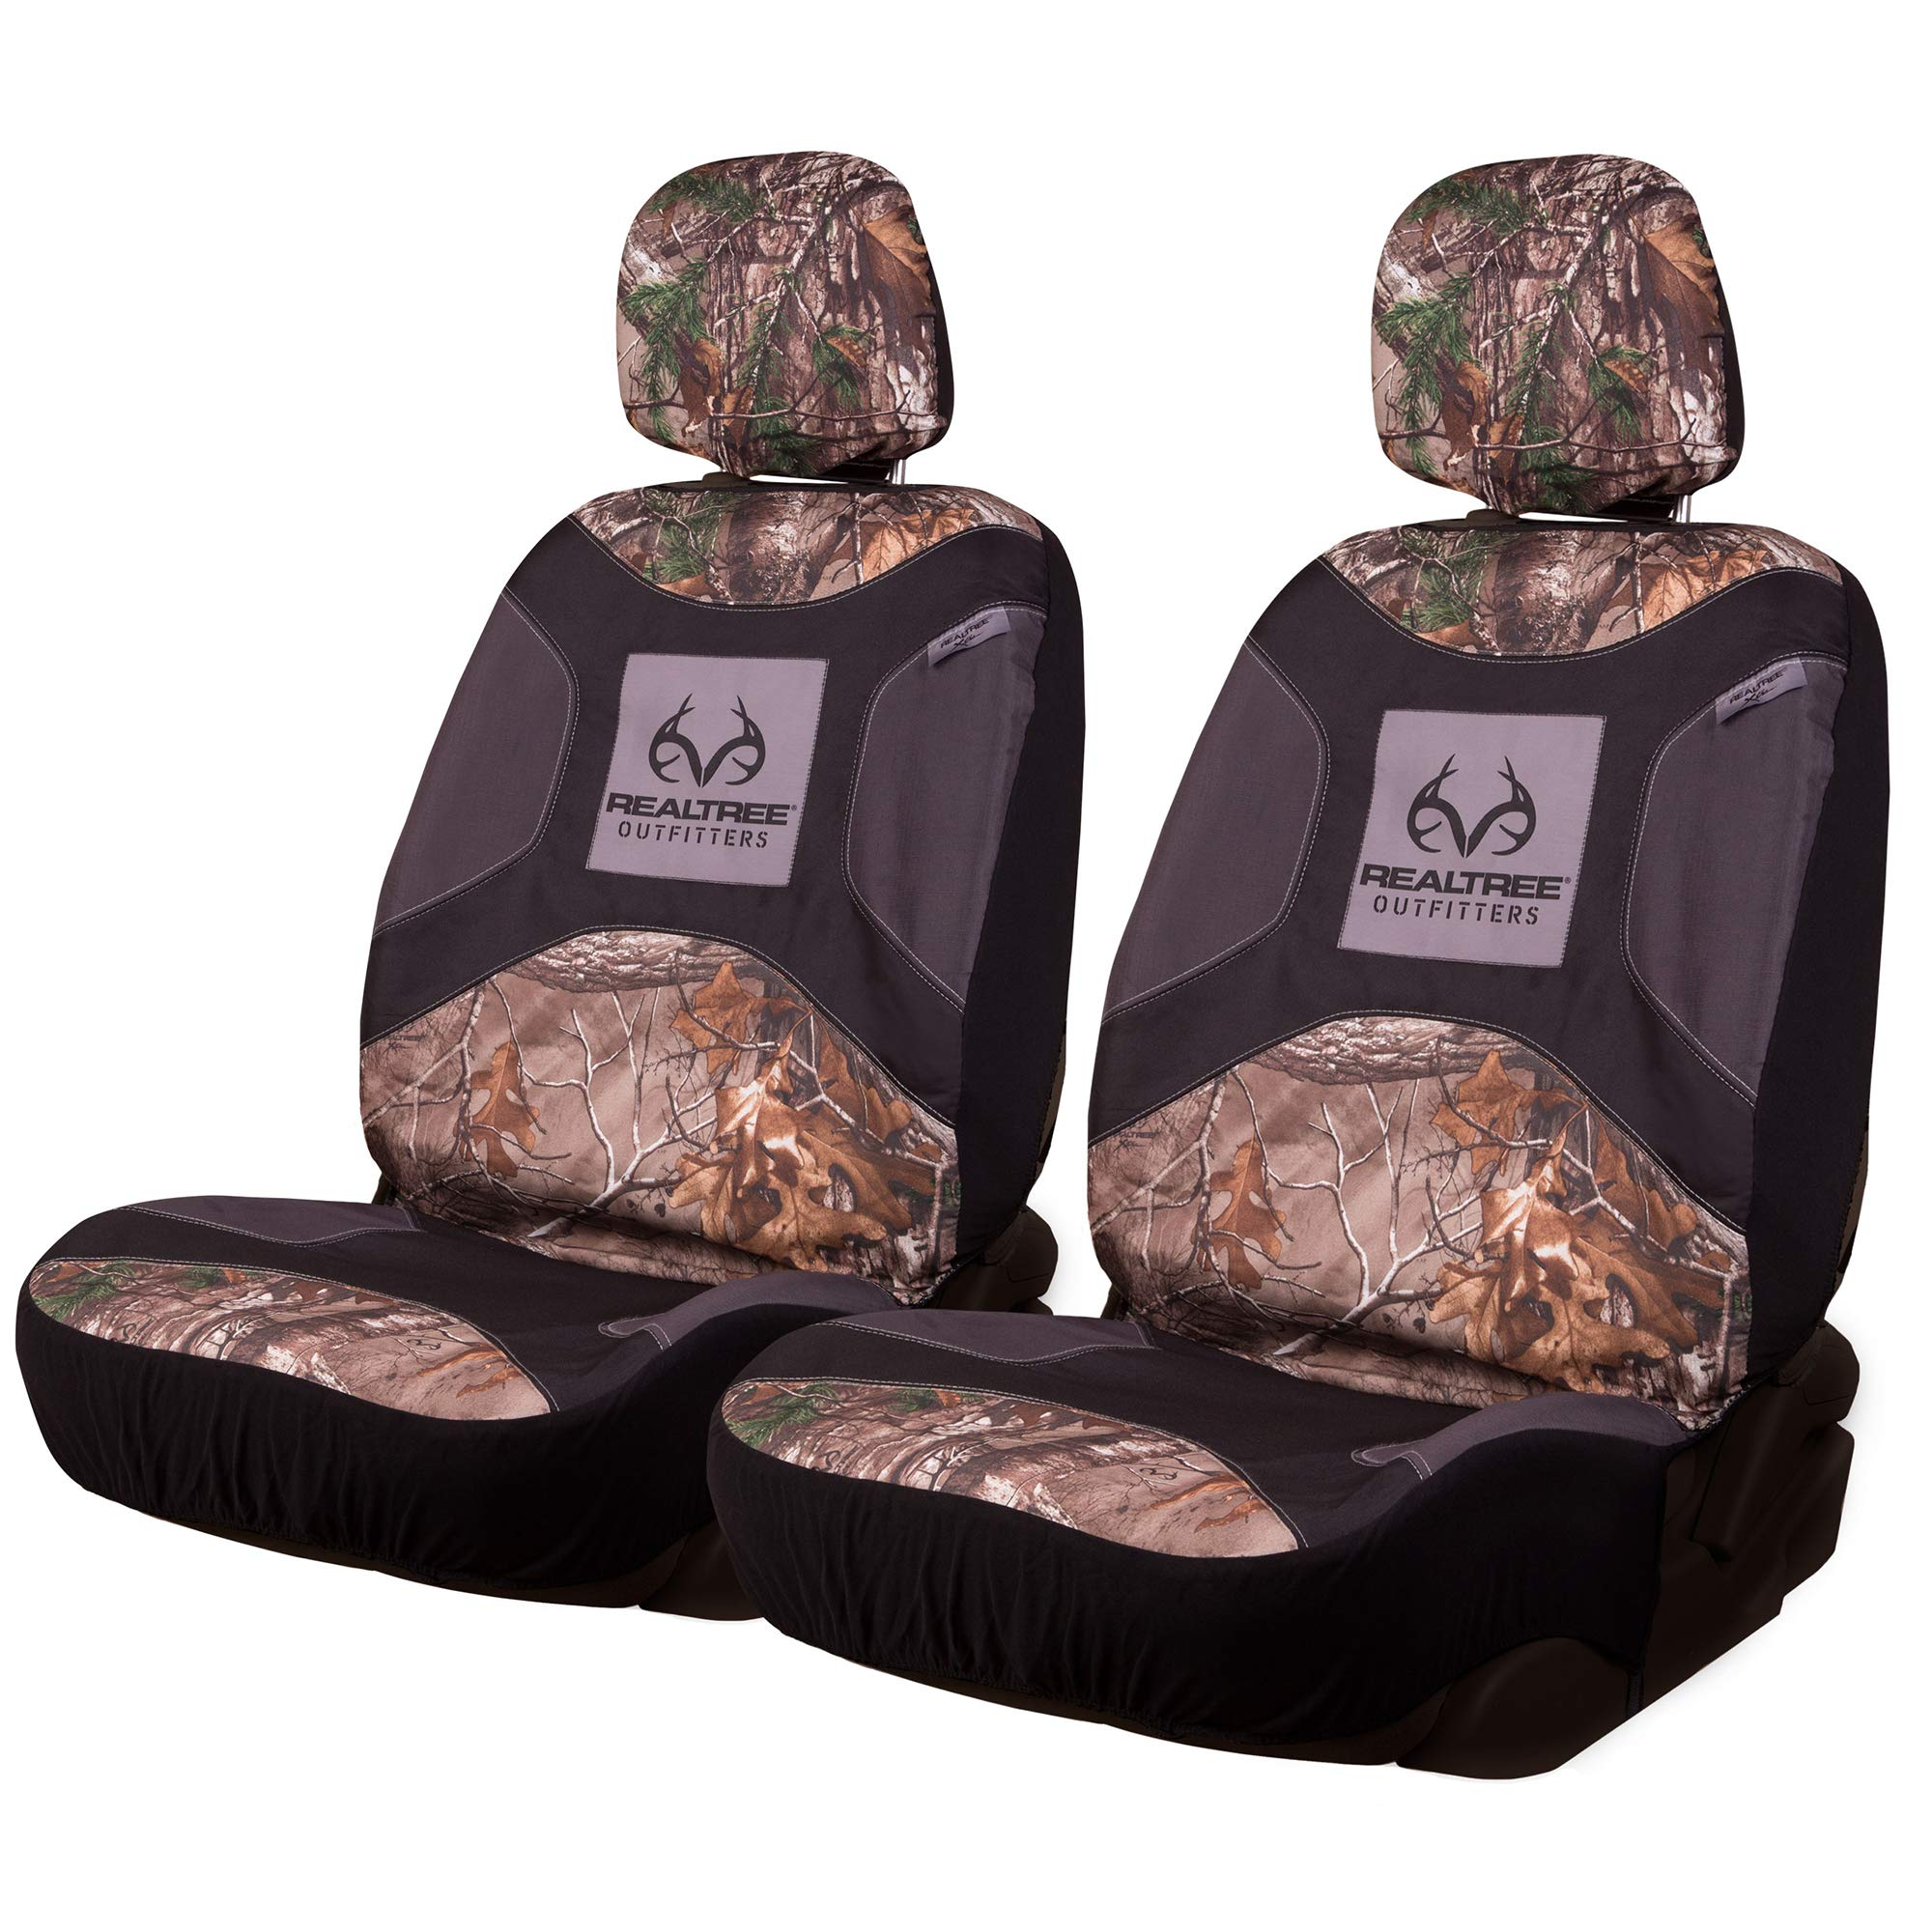 Realtree Camo Seat Covers | Low Back | Xtra | 2 Pack by Realtree